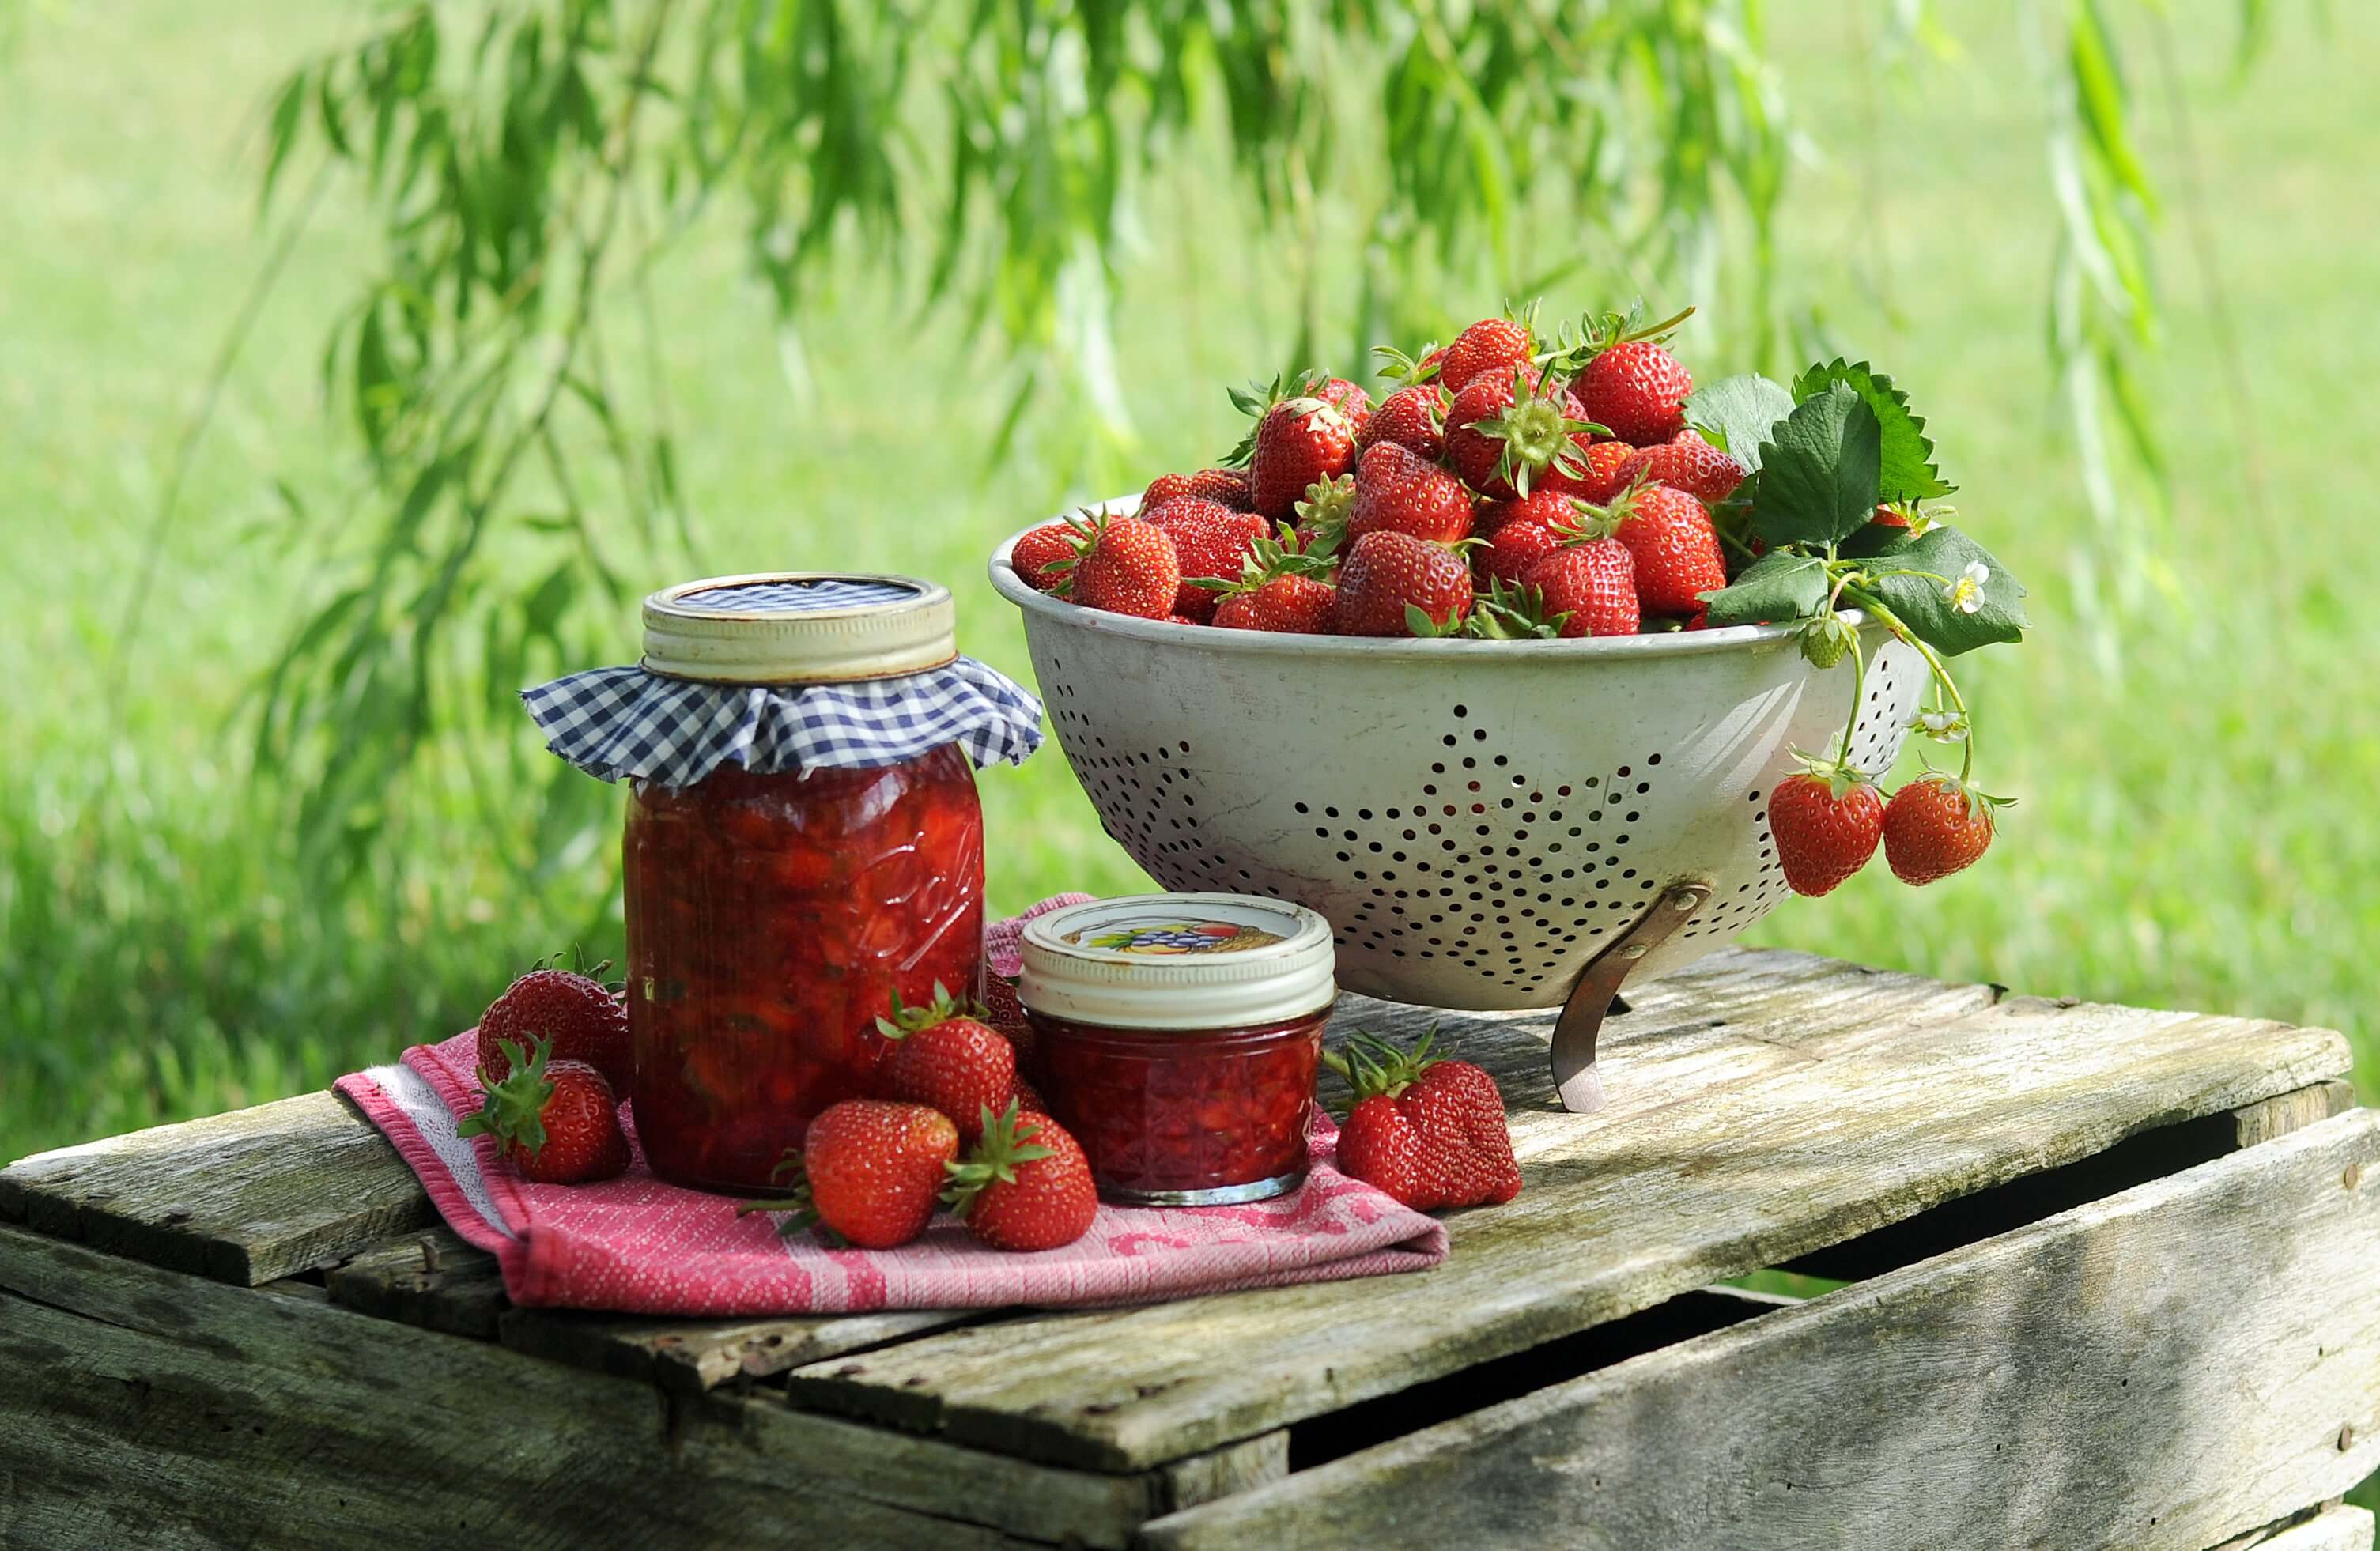 Fresh strawberries and jars of strawberry jam on a table outdoors